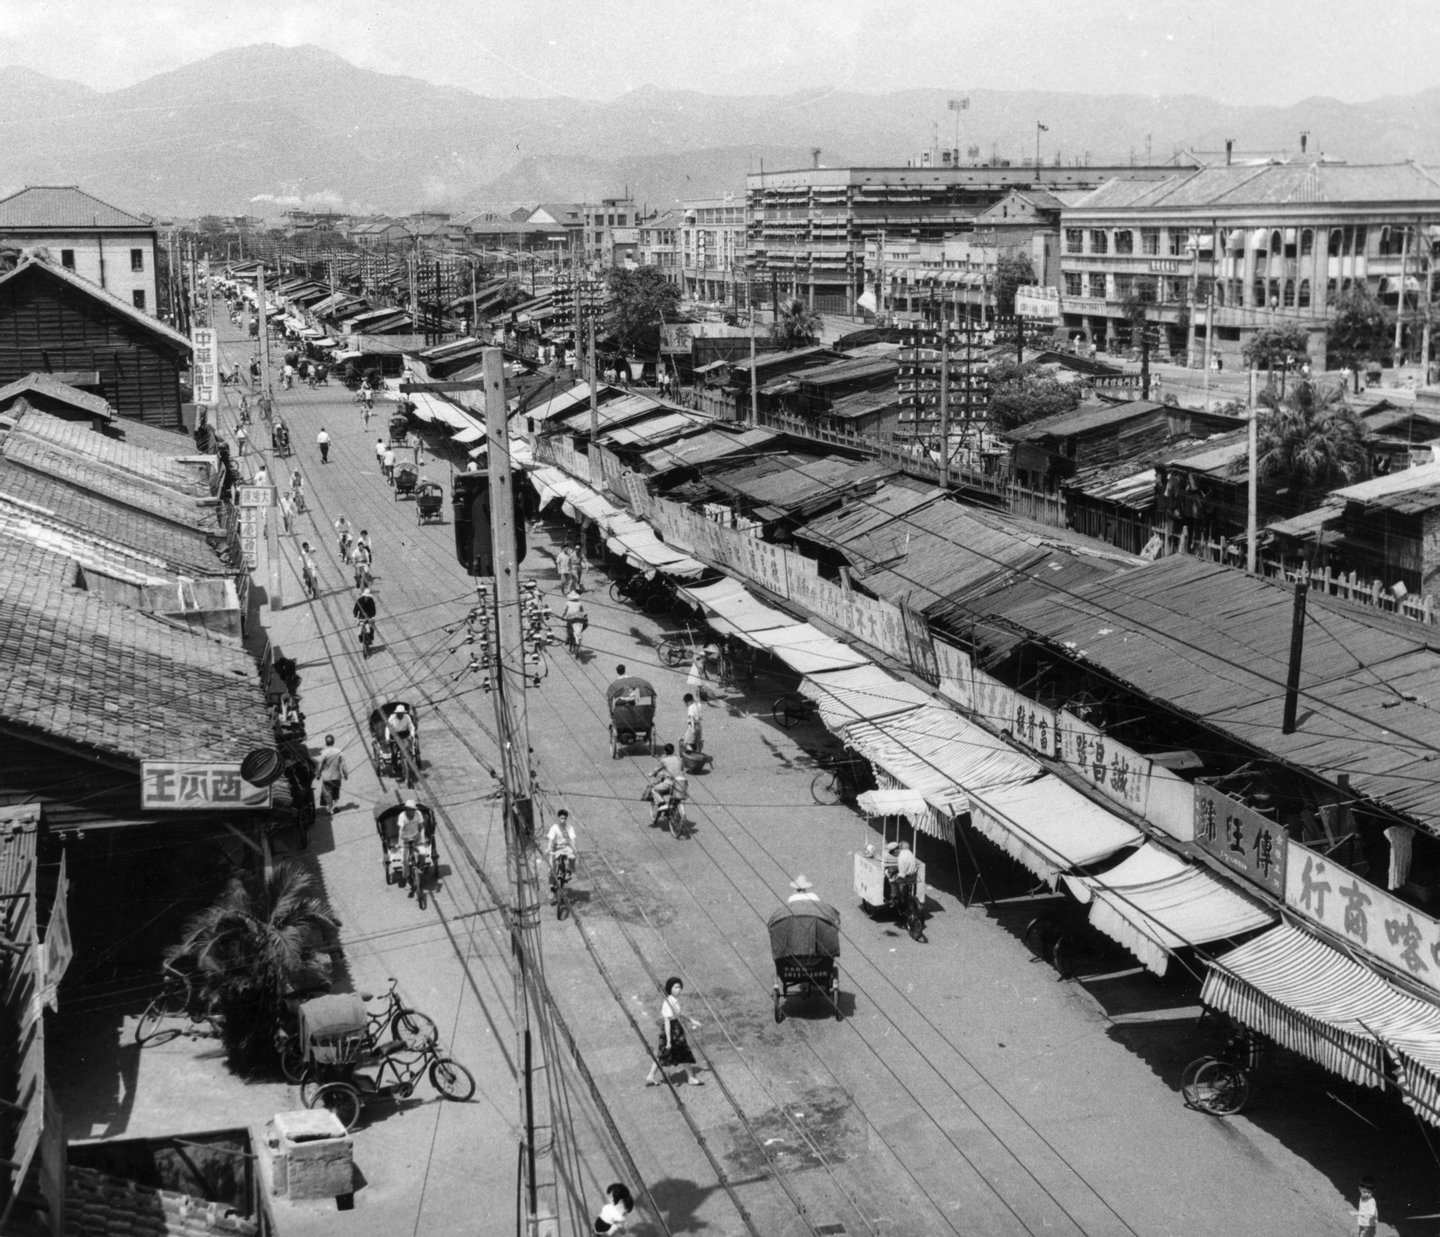 Circa 1955: Shops on Chung Hwa Road, Taipei, Taiwan (Formosa), built mostly after 1949 by Chinese refugees from the mainland. The more solid buildings on the right were built by the Japanese during their occupation of the island (from 1895 to 1945). (Photo by Three Lions/Getty Images)